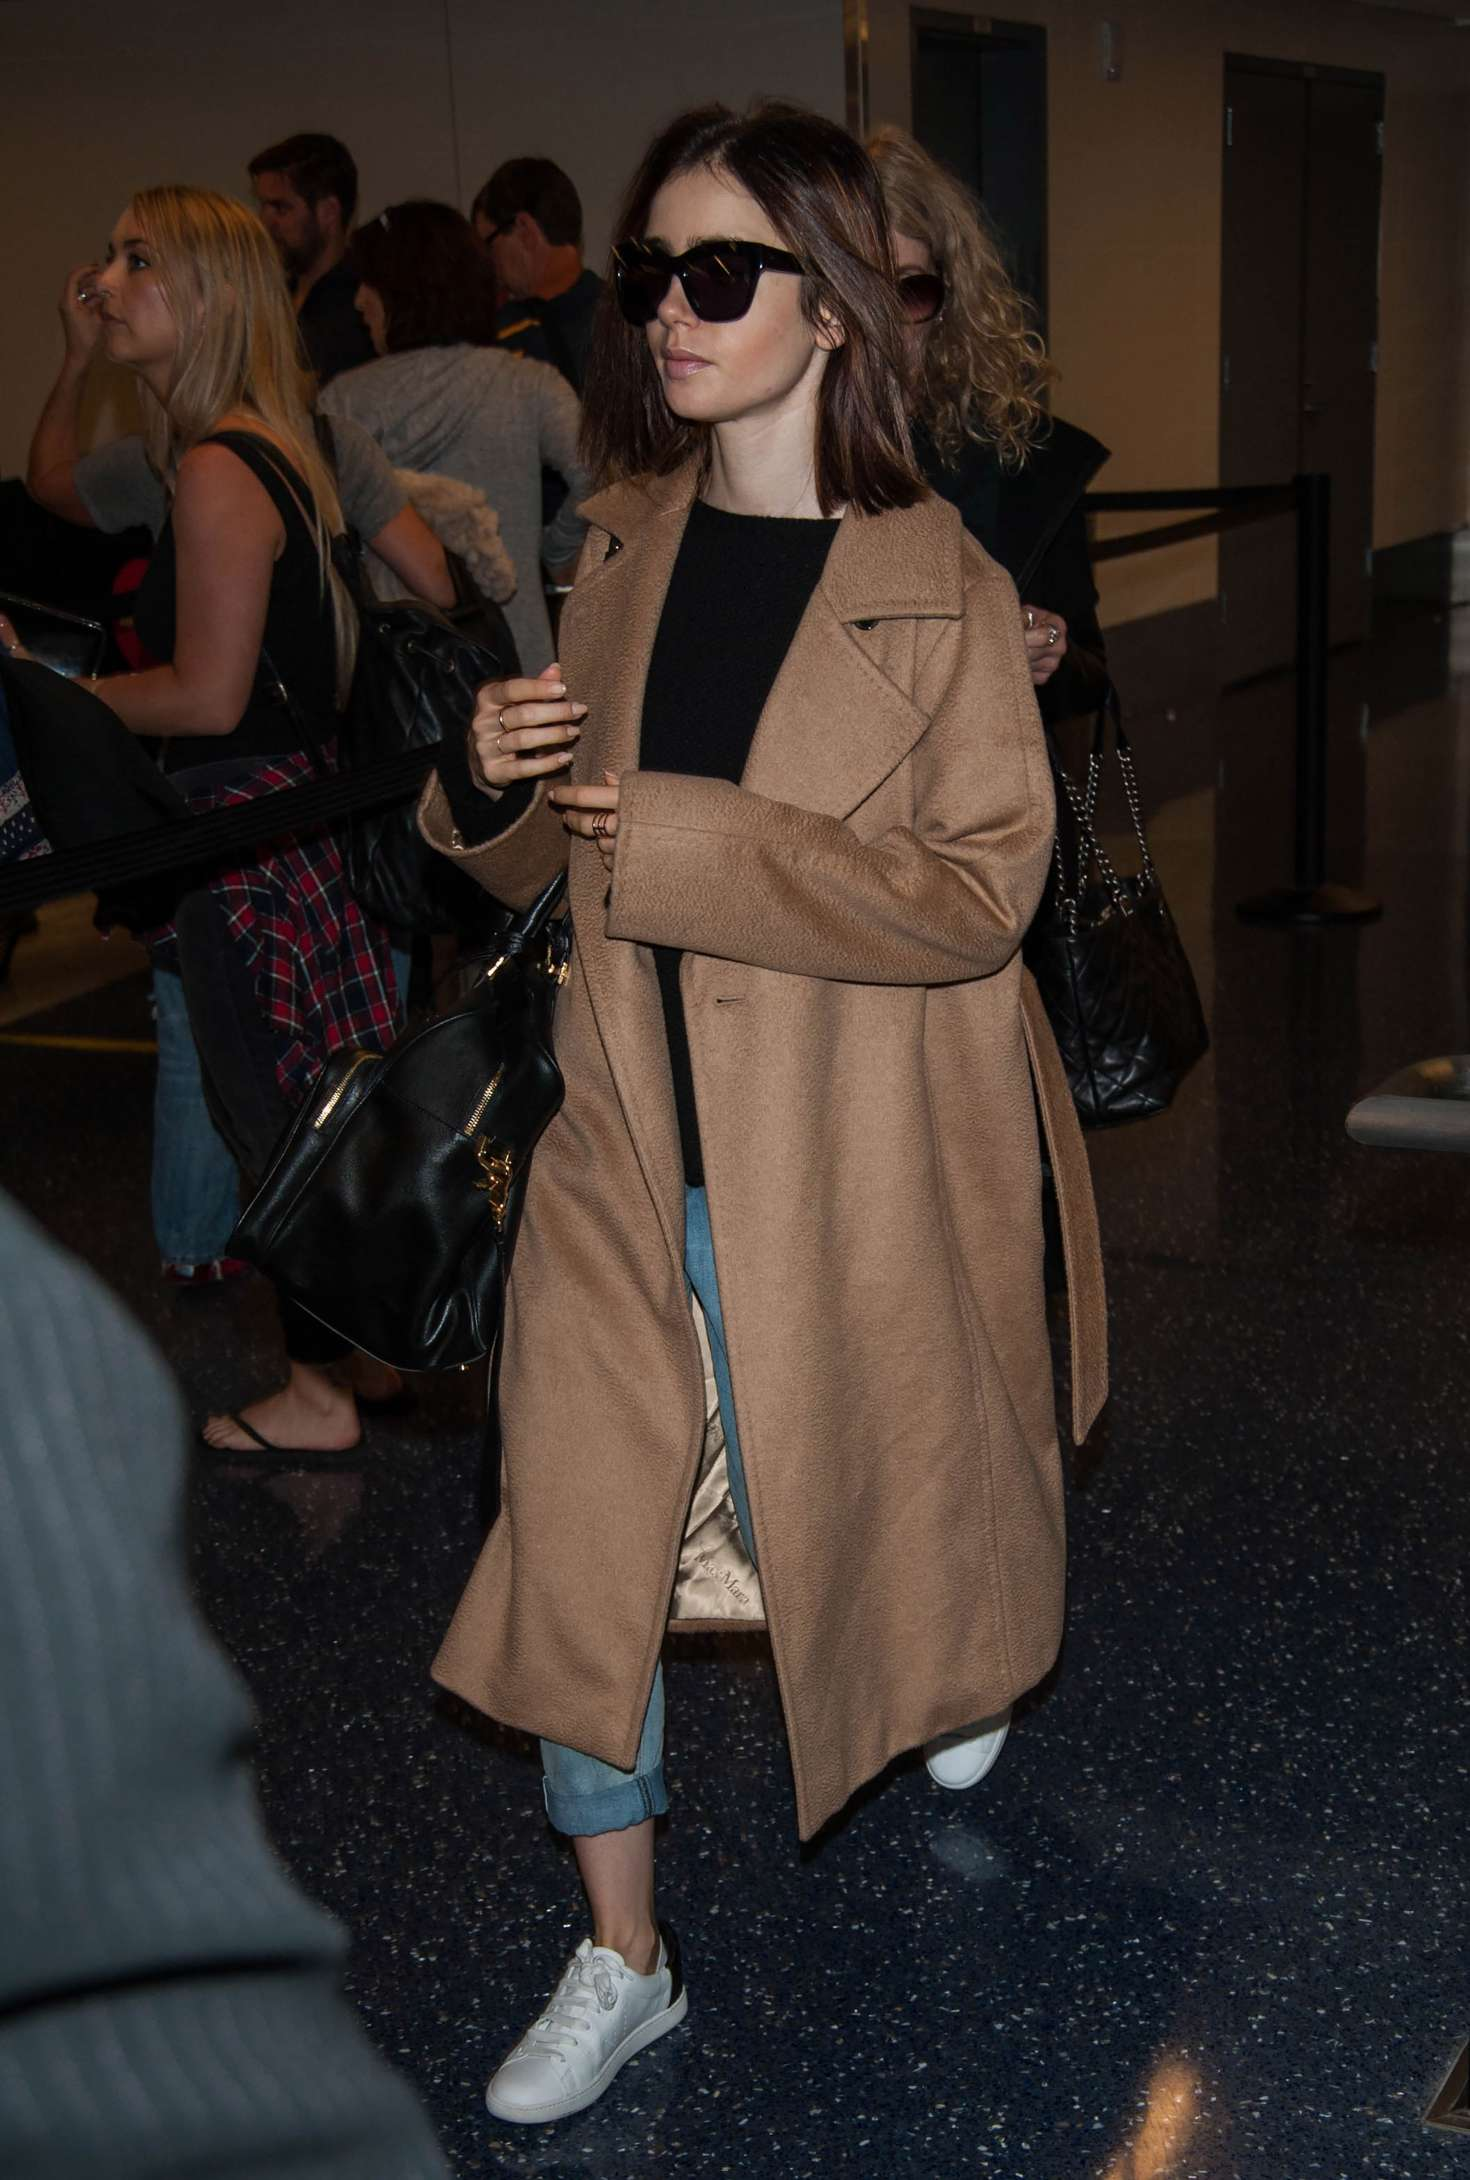 Lily Collins 2016 : Lily Collins at LAX Airport -05